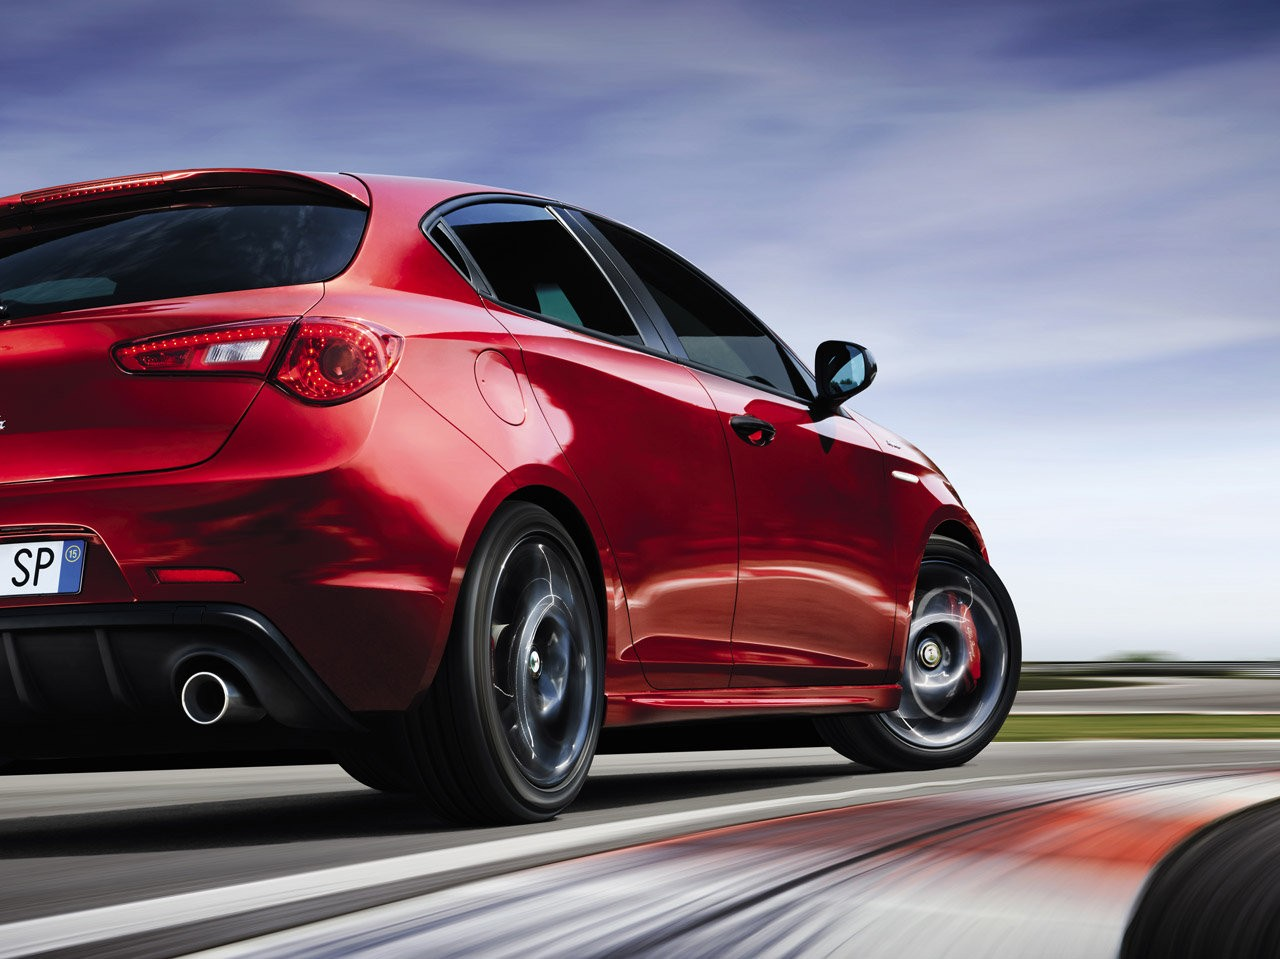 2016 alfa romeo giulietta facelift to debut at geneva 2016 this one 39 s called sprint speciale. Black Bedroom Furniture Sets. Home Design Ideas